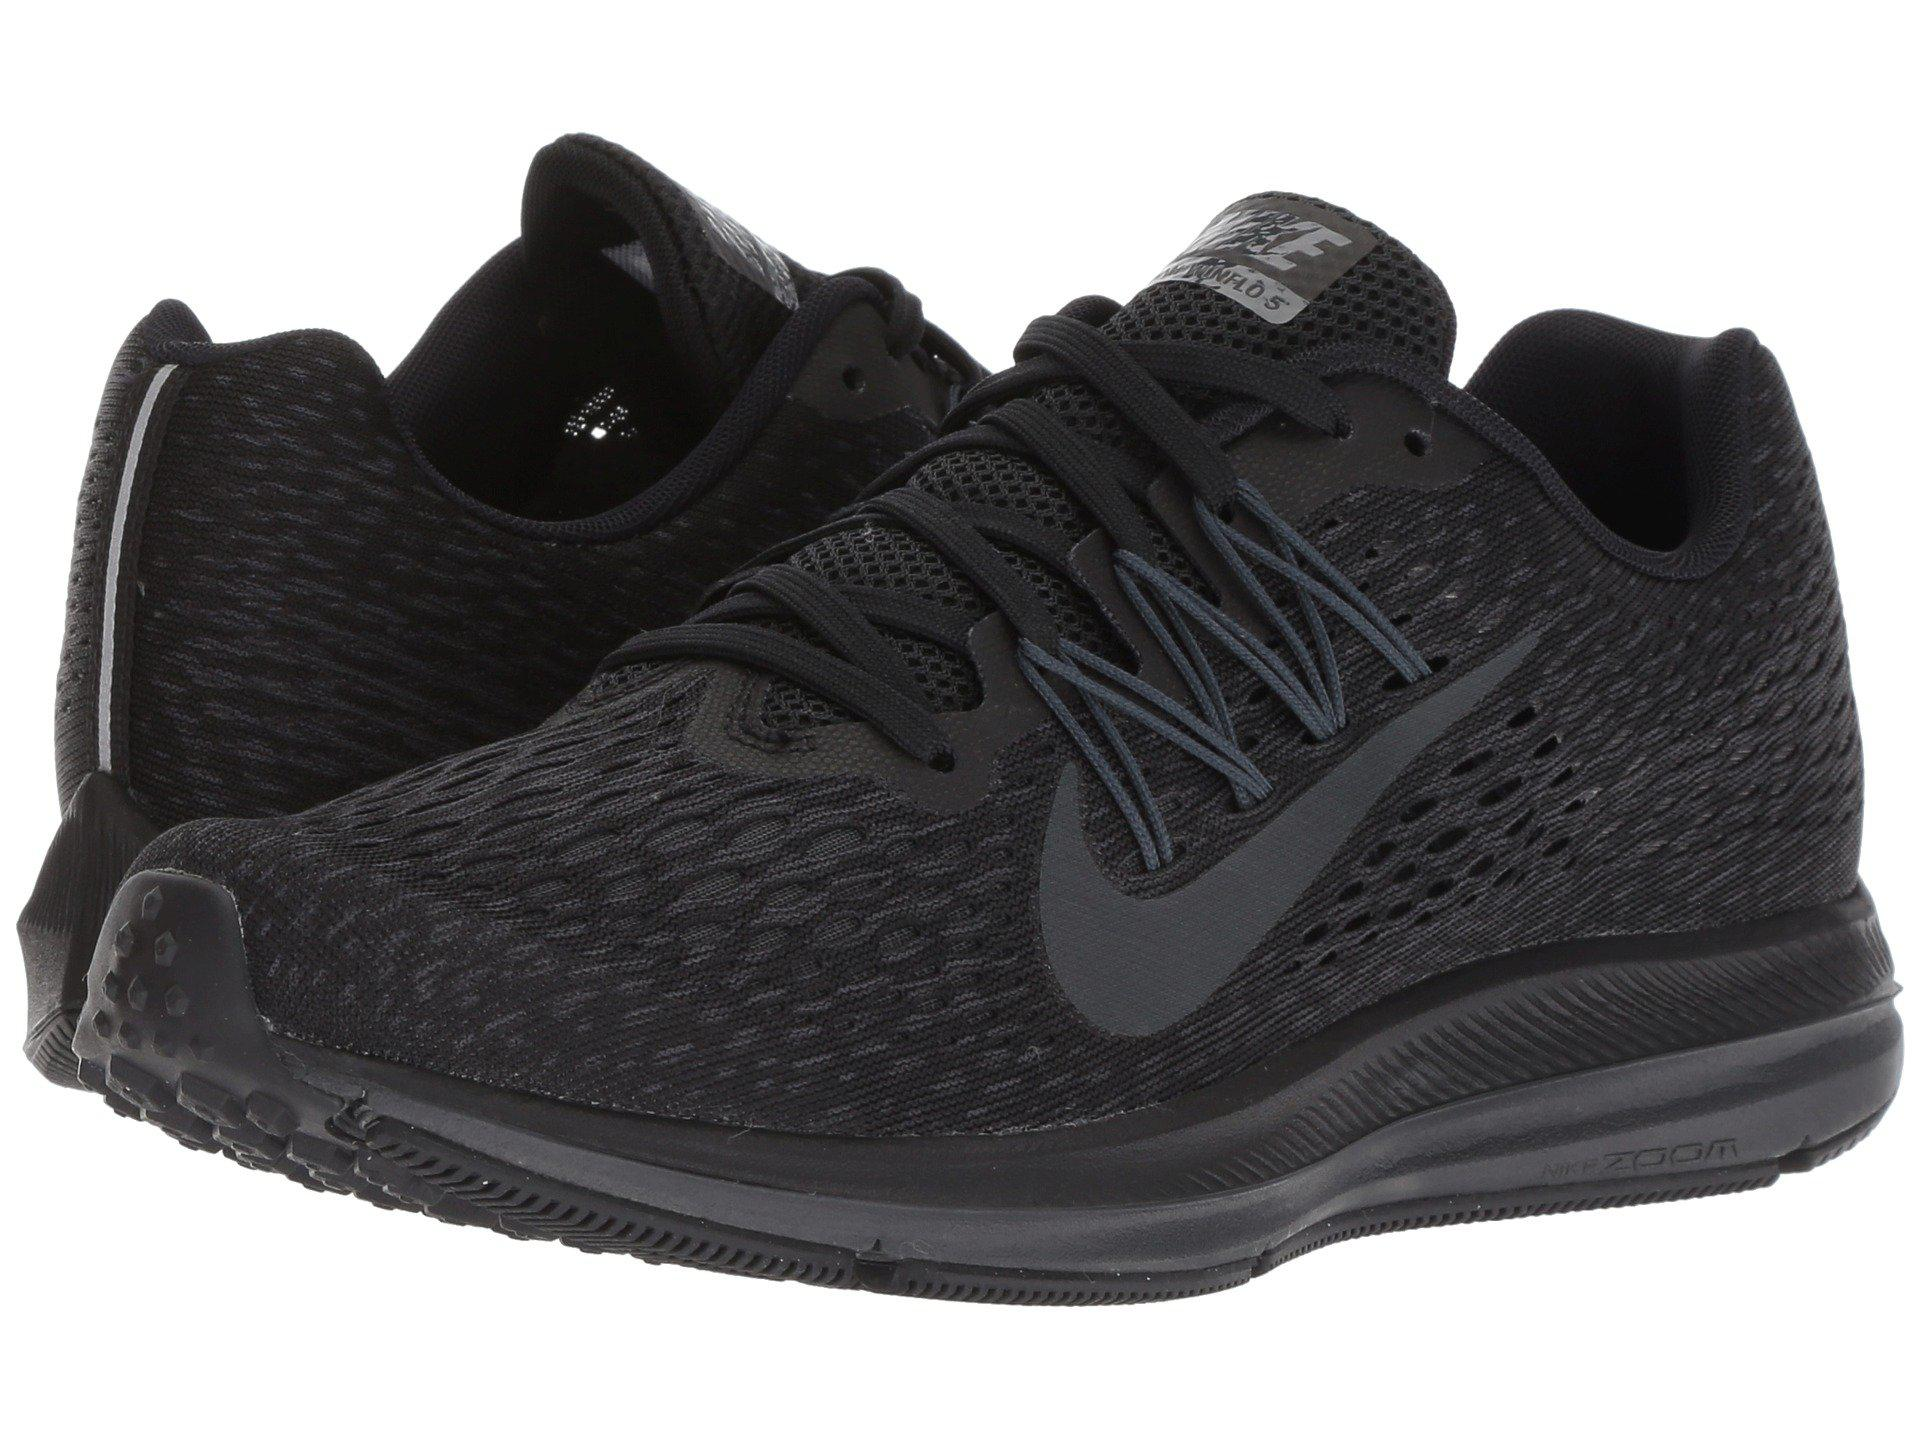 separation shoes 283da 209d4 Nike. Air Zoom Winflo 5 (black anthracite) Women s Running Shoes